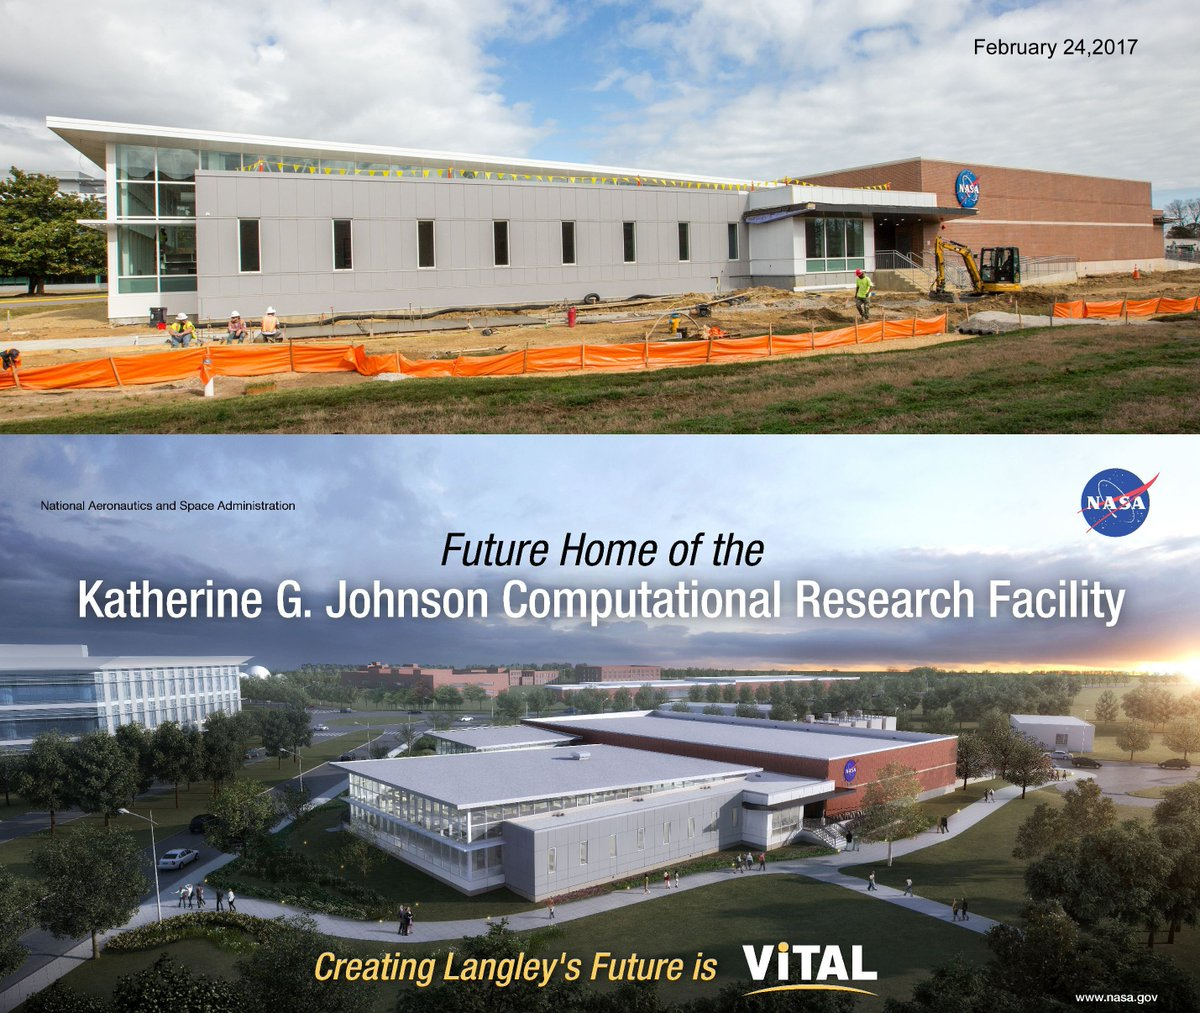 Katherine Johnson is no @HiddenFigures to us. Her new building is gett...